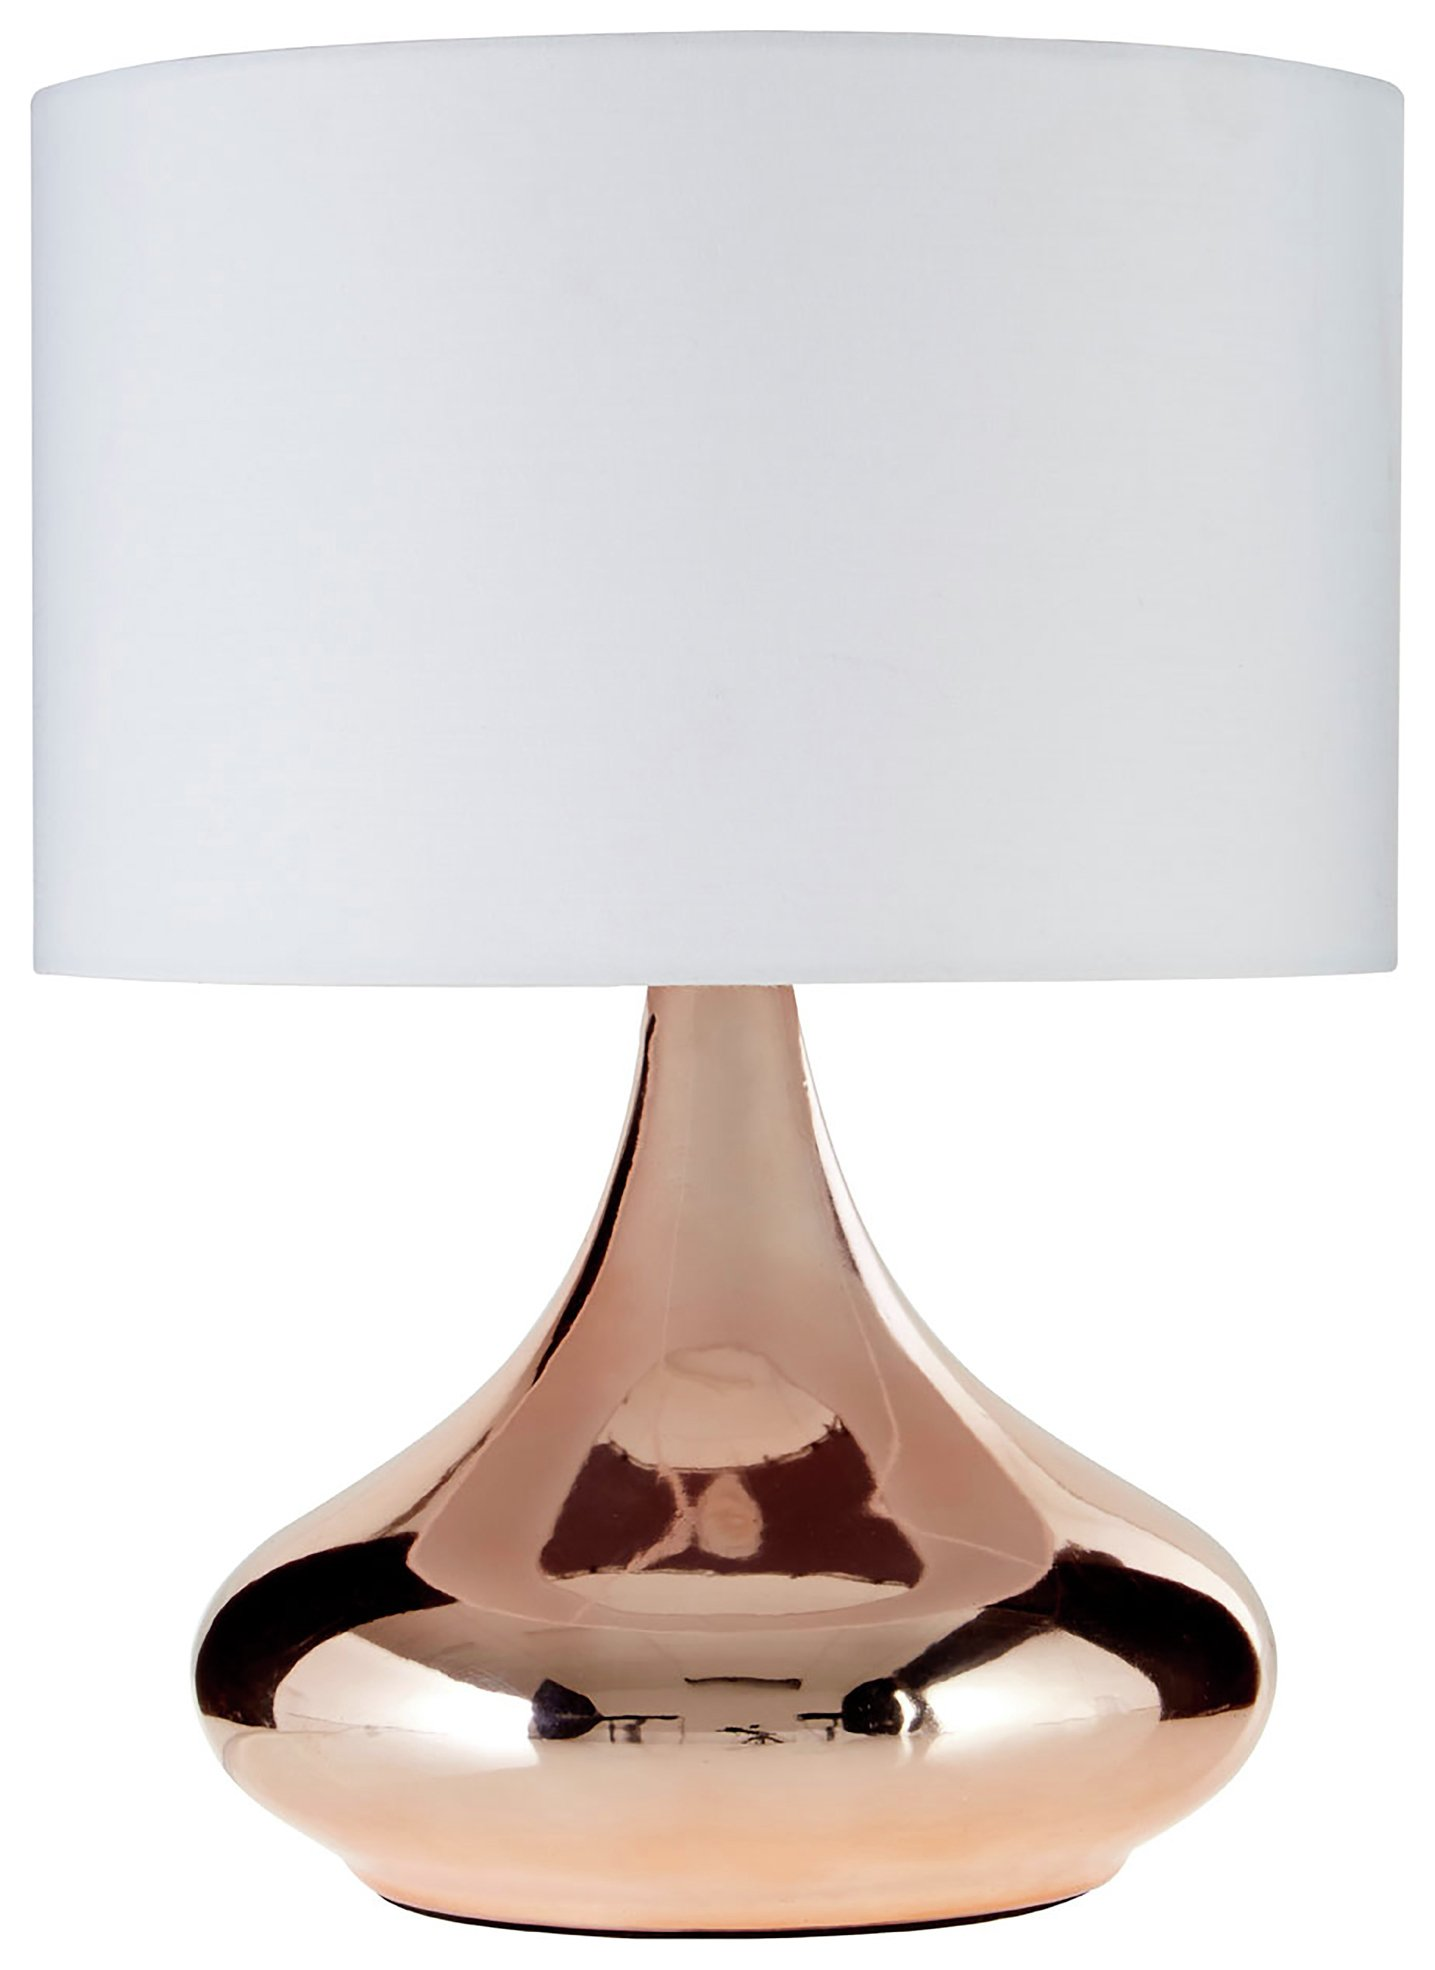 Image of Jaden - Ceramic - Table Lamp - Ivory